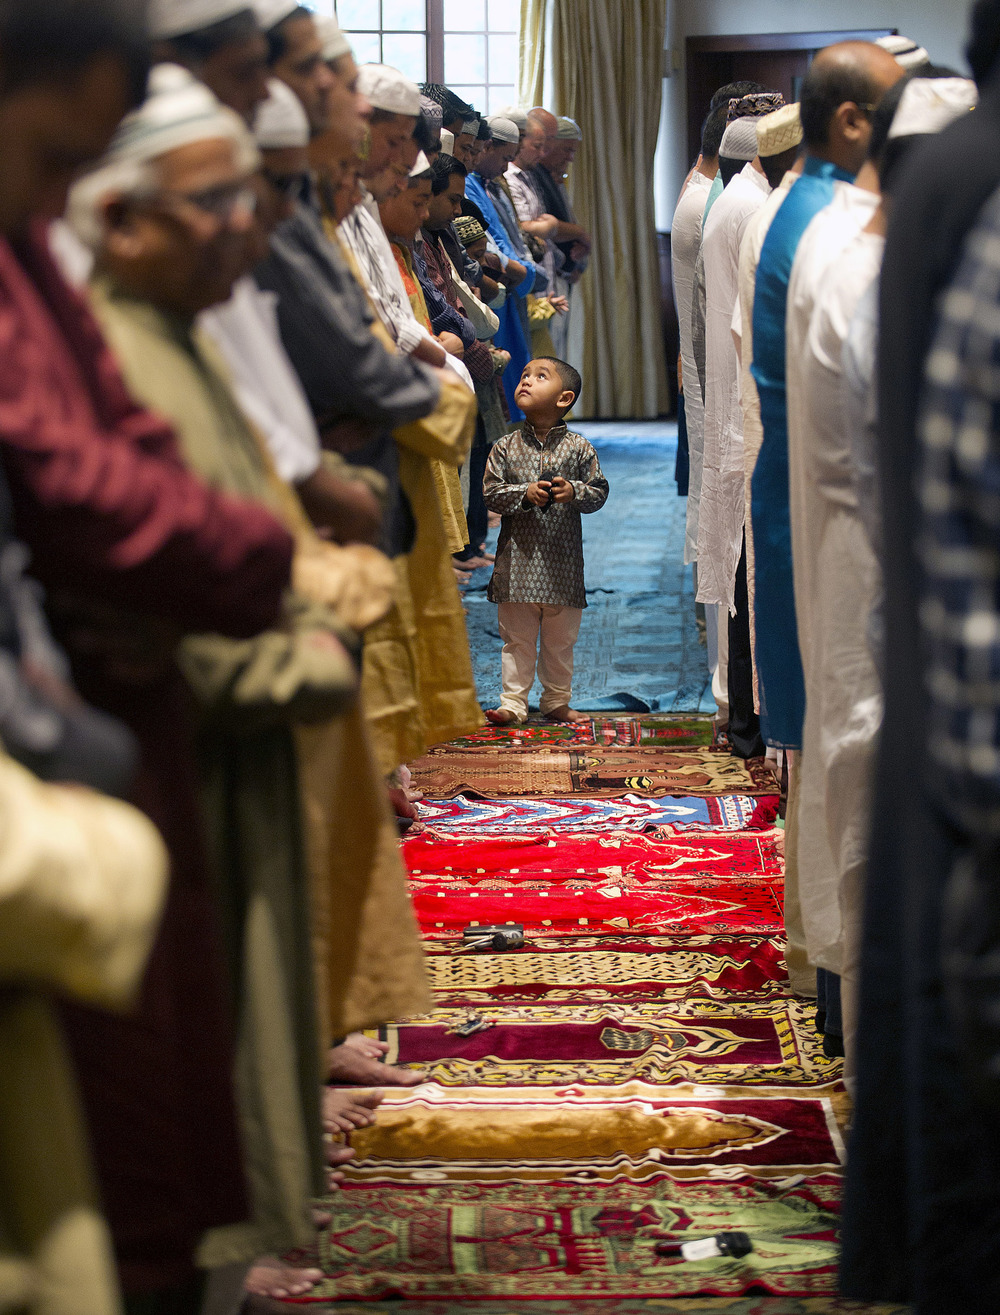 Members of the Stamford Islamic Center participate in Eid al-Fitr prayers to mark the end of Ramadan at the Italian Center in Stamford, Conn., on Thursday, August 8, 2013.